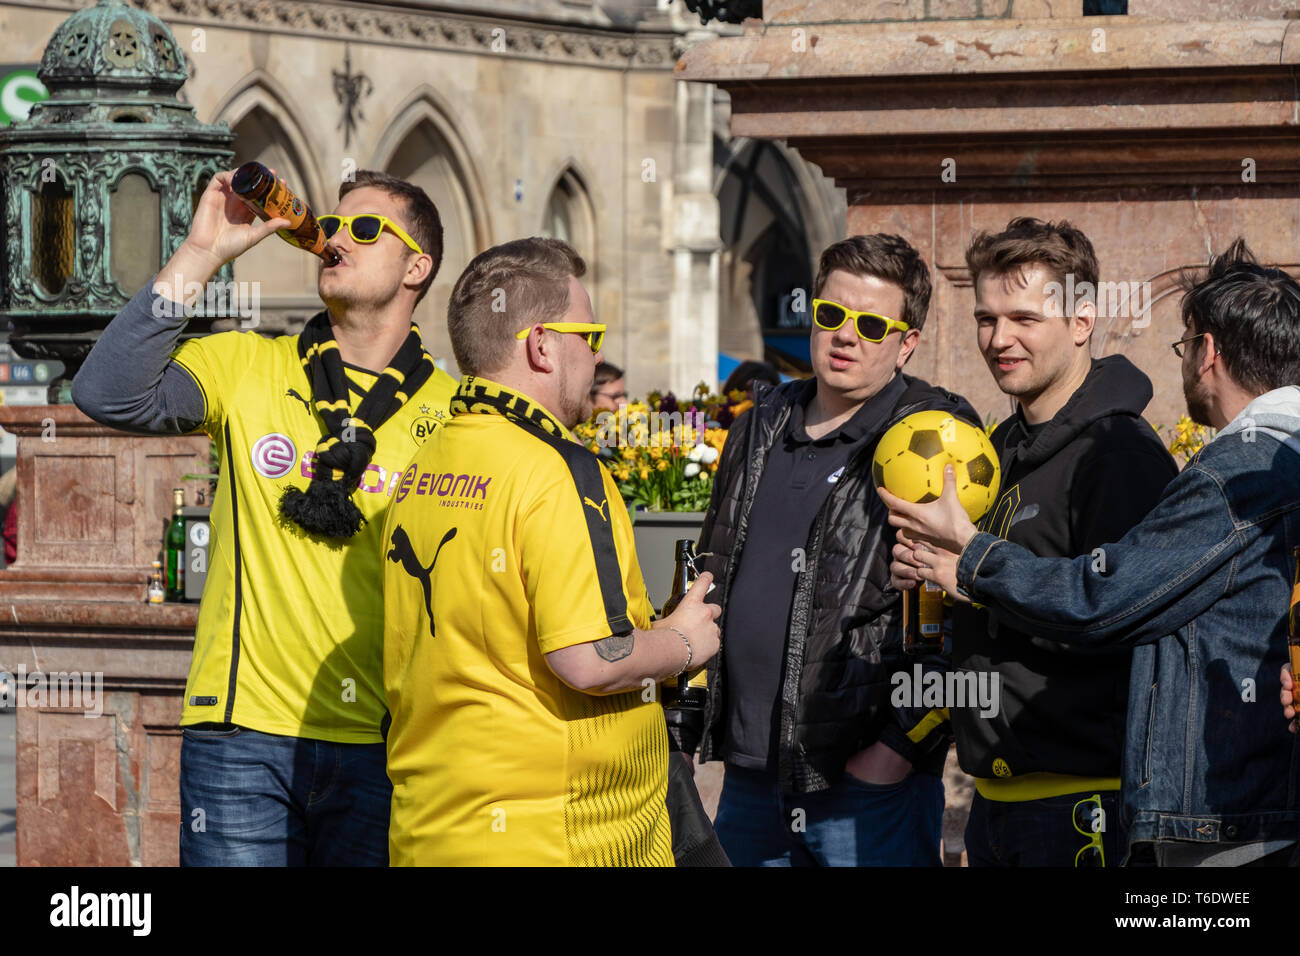 MARIENPLATZ, MUENCHEN, APRIL 6, 2019: bvb fans drinking alcohol at the marienplatz in munich for the public viewing - Stock Image